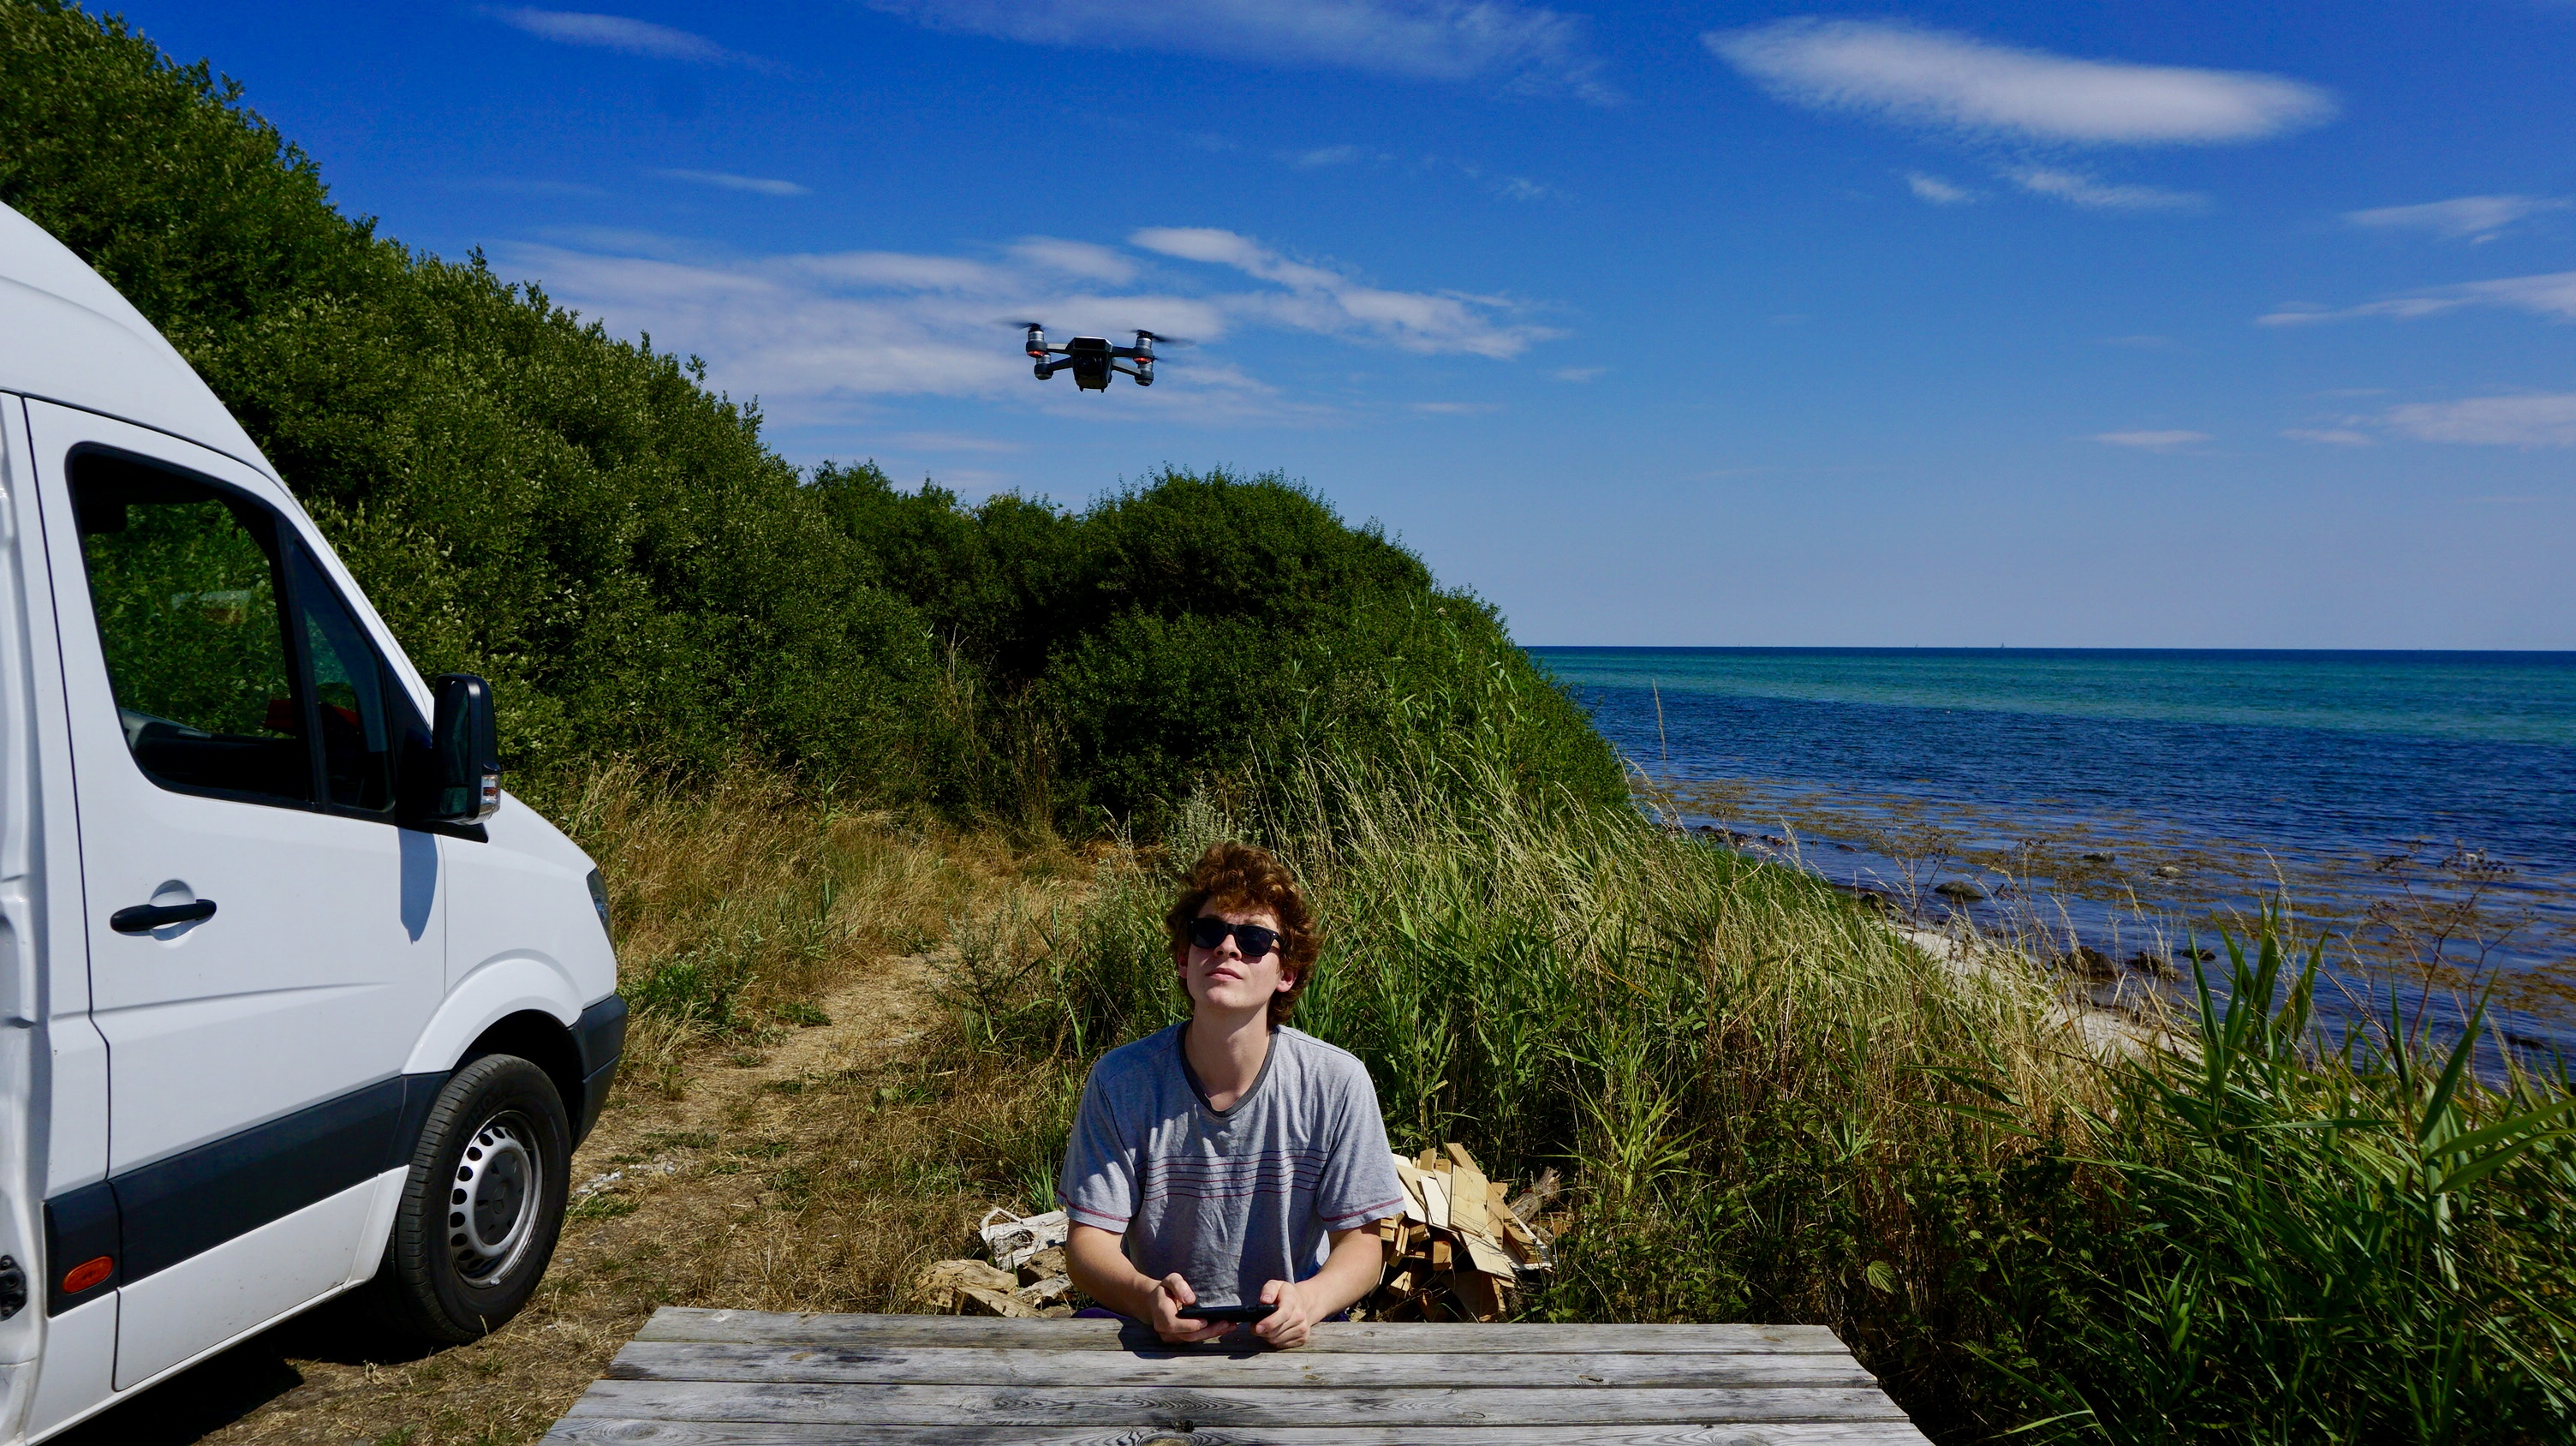 Tim_and_the_drone.jpeg